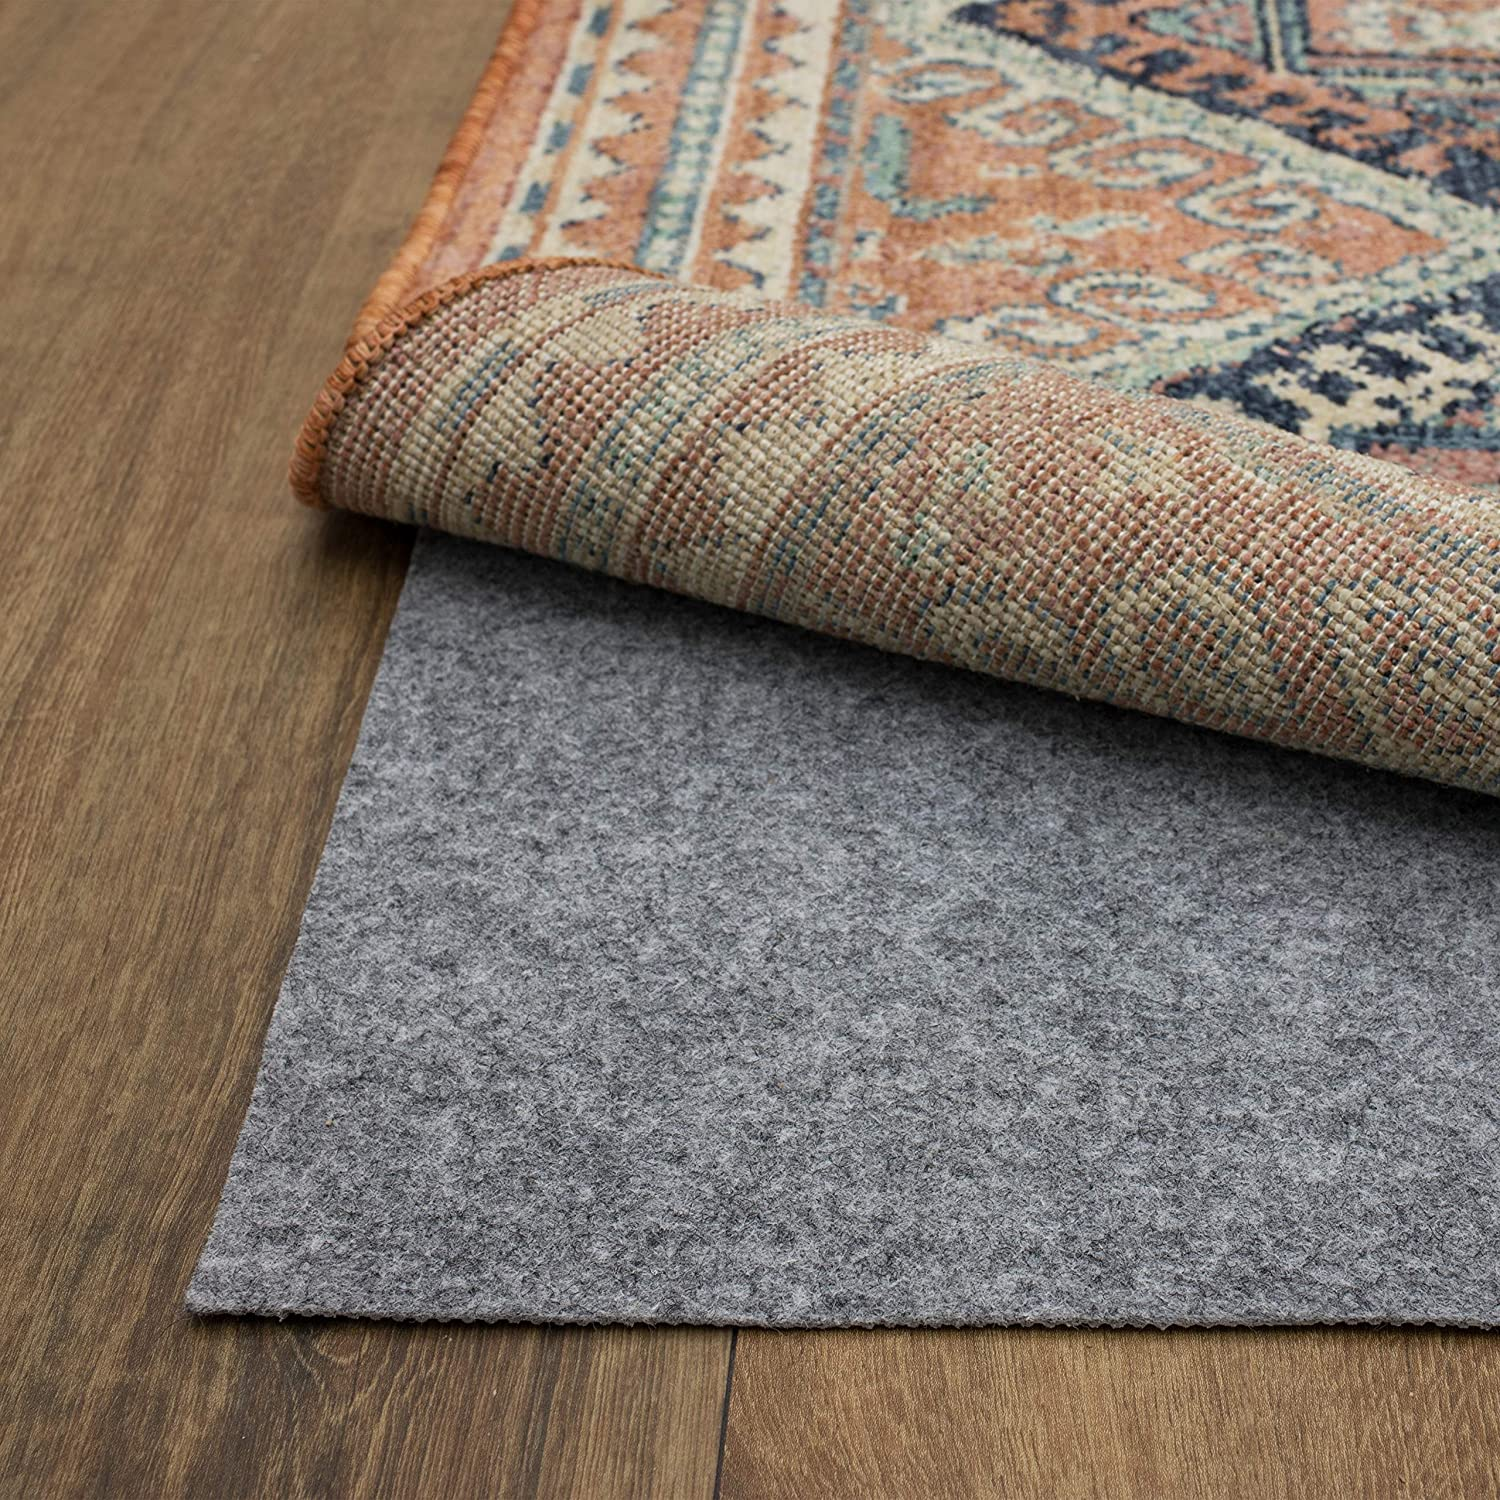 Mohawk Home Dual Surface Area Rug, 8' Round, Gray